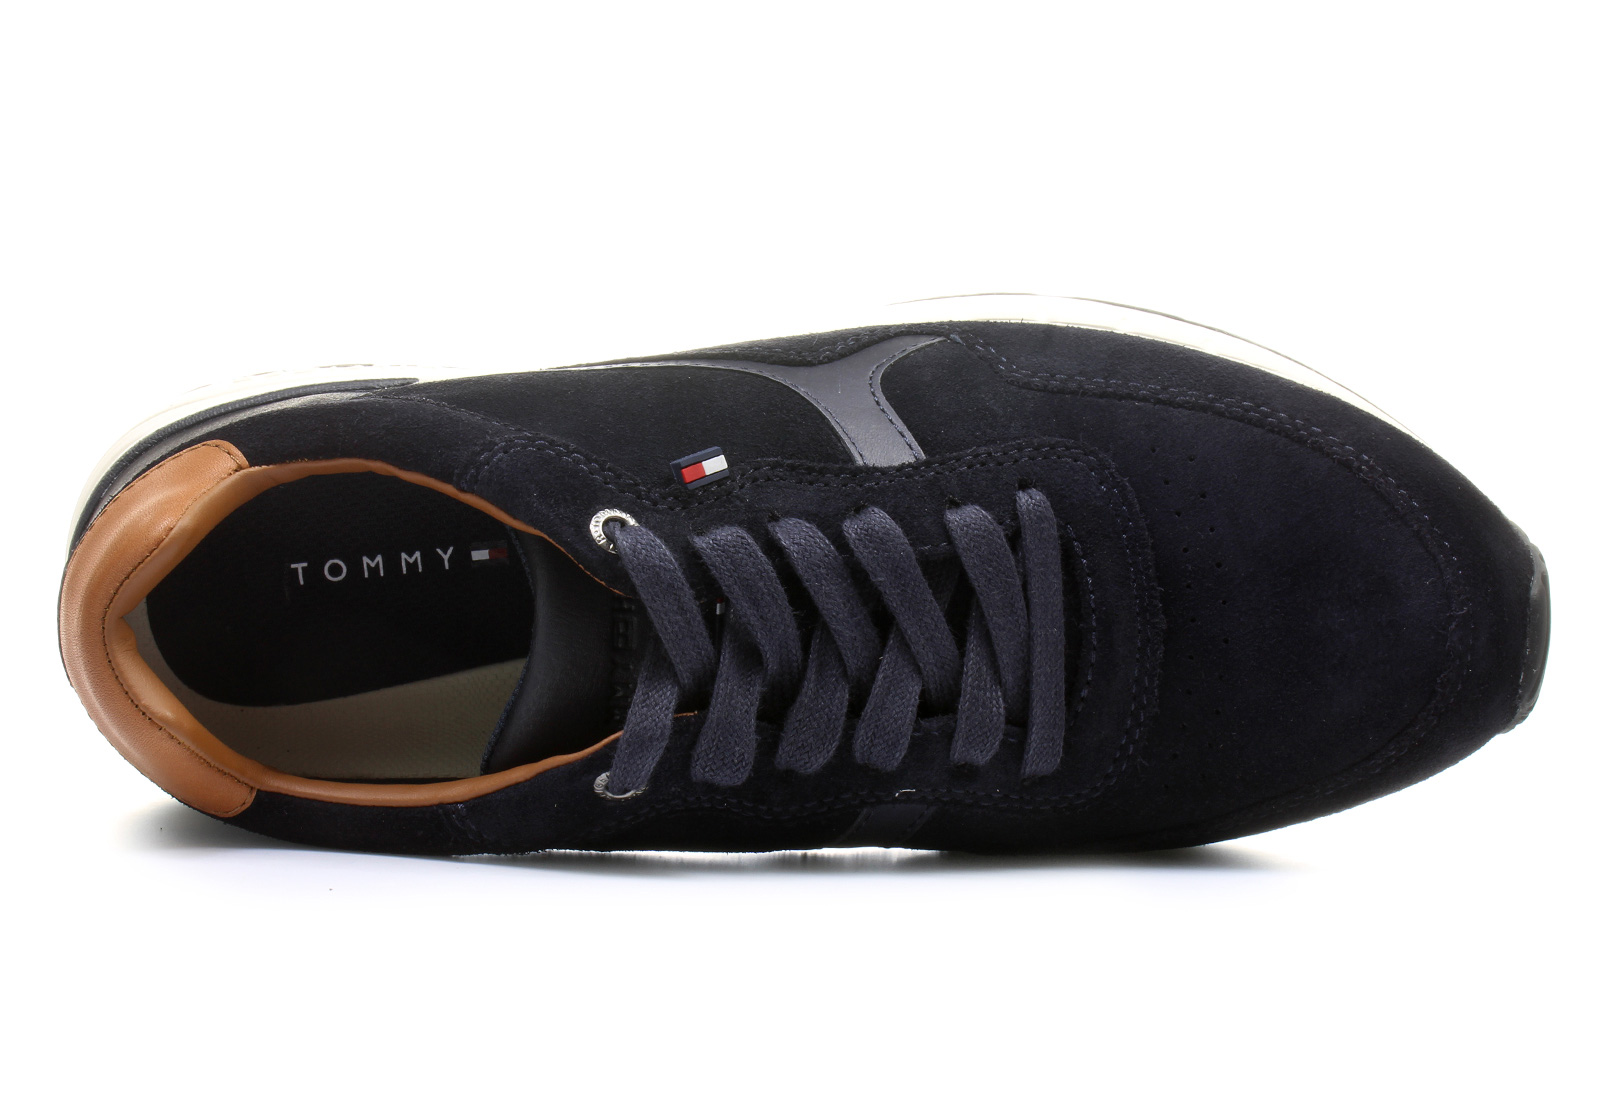 10741aa1c8fedc Tommy Hilfiger Shoes - Rush 1c1 - 16F-1600-403 - Online shop for ...